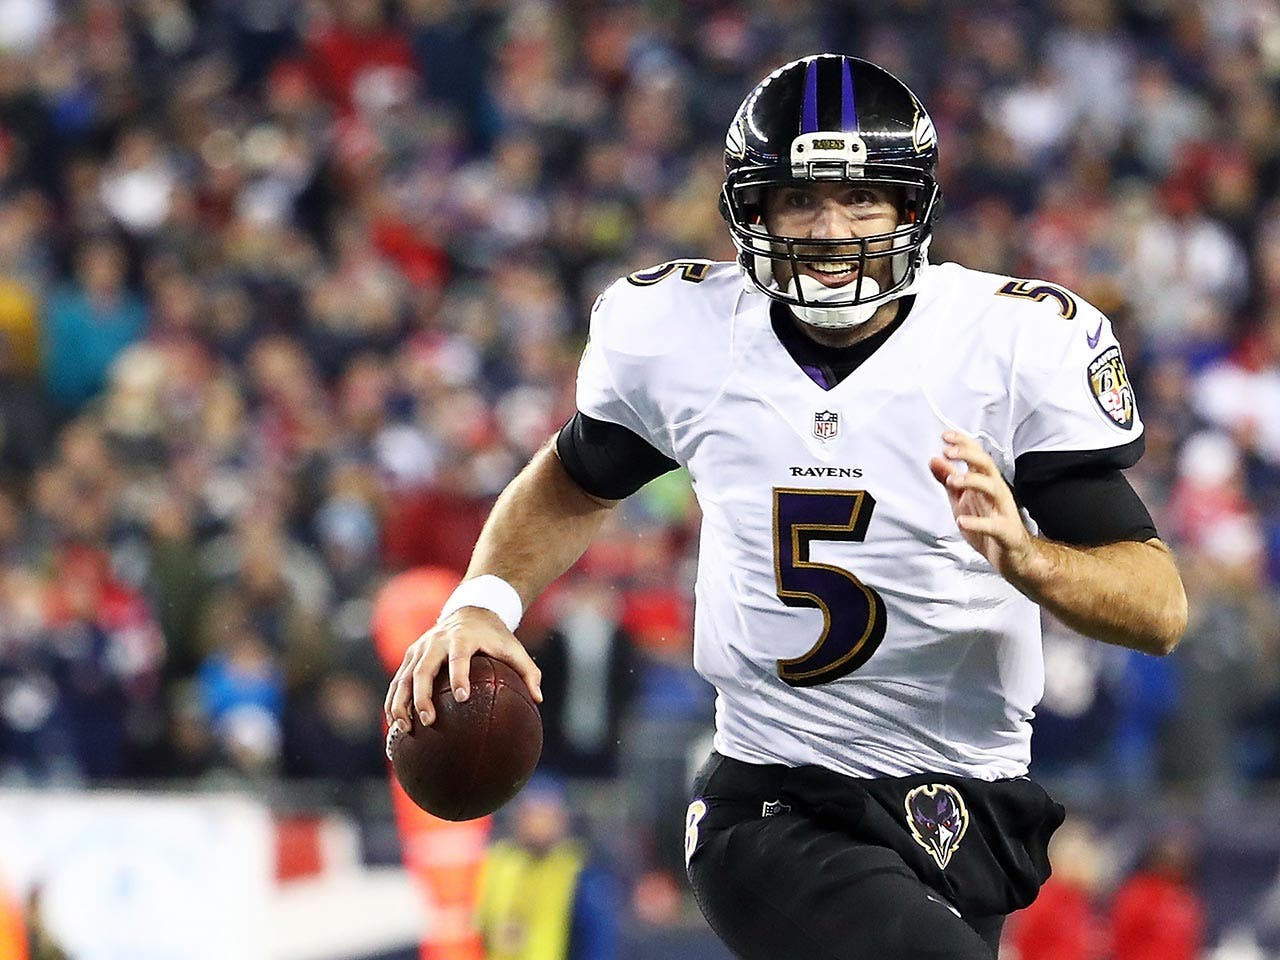 highest paid nfl player 5 flacco